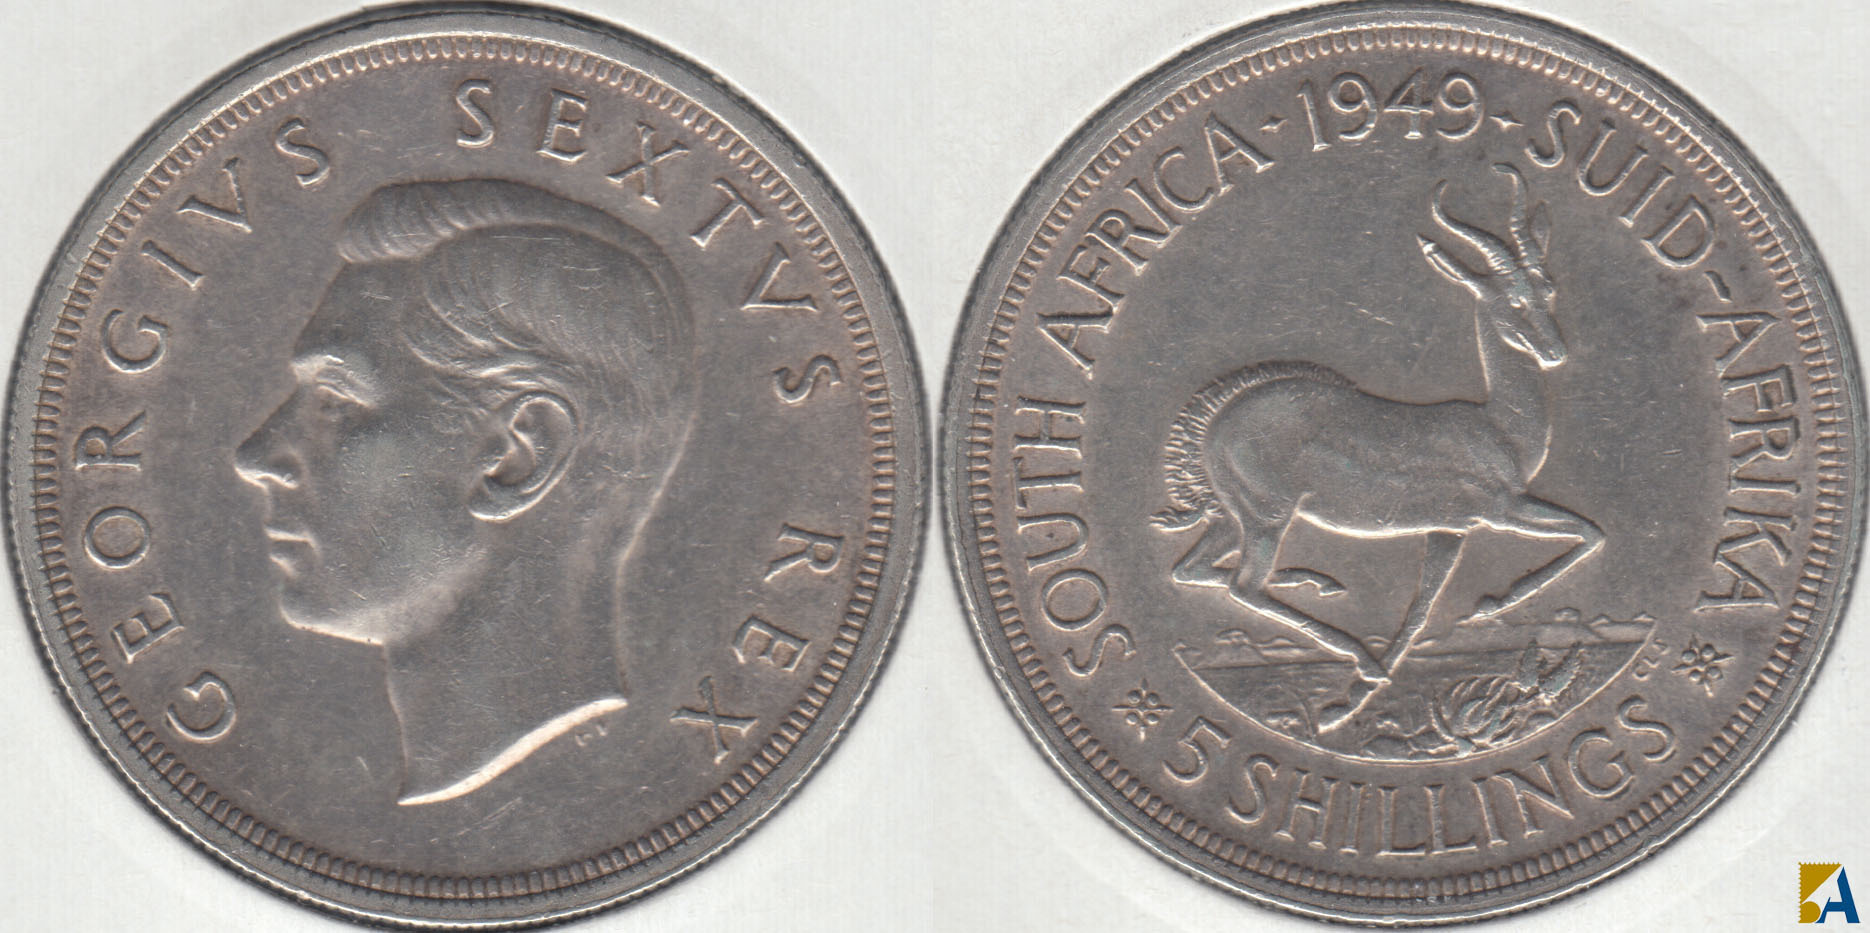 SUDAFRICA - SOUTH AFRICA. 5 SHILLINGS DE 1949. PLATA 0.800. (2)